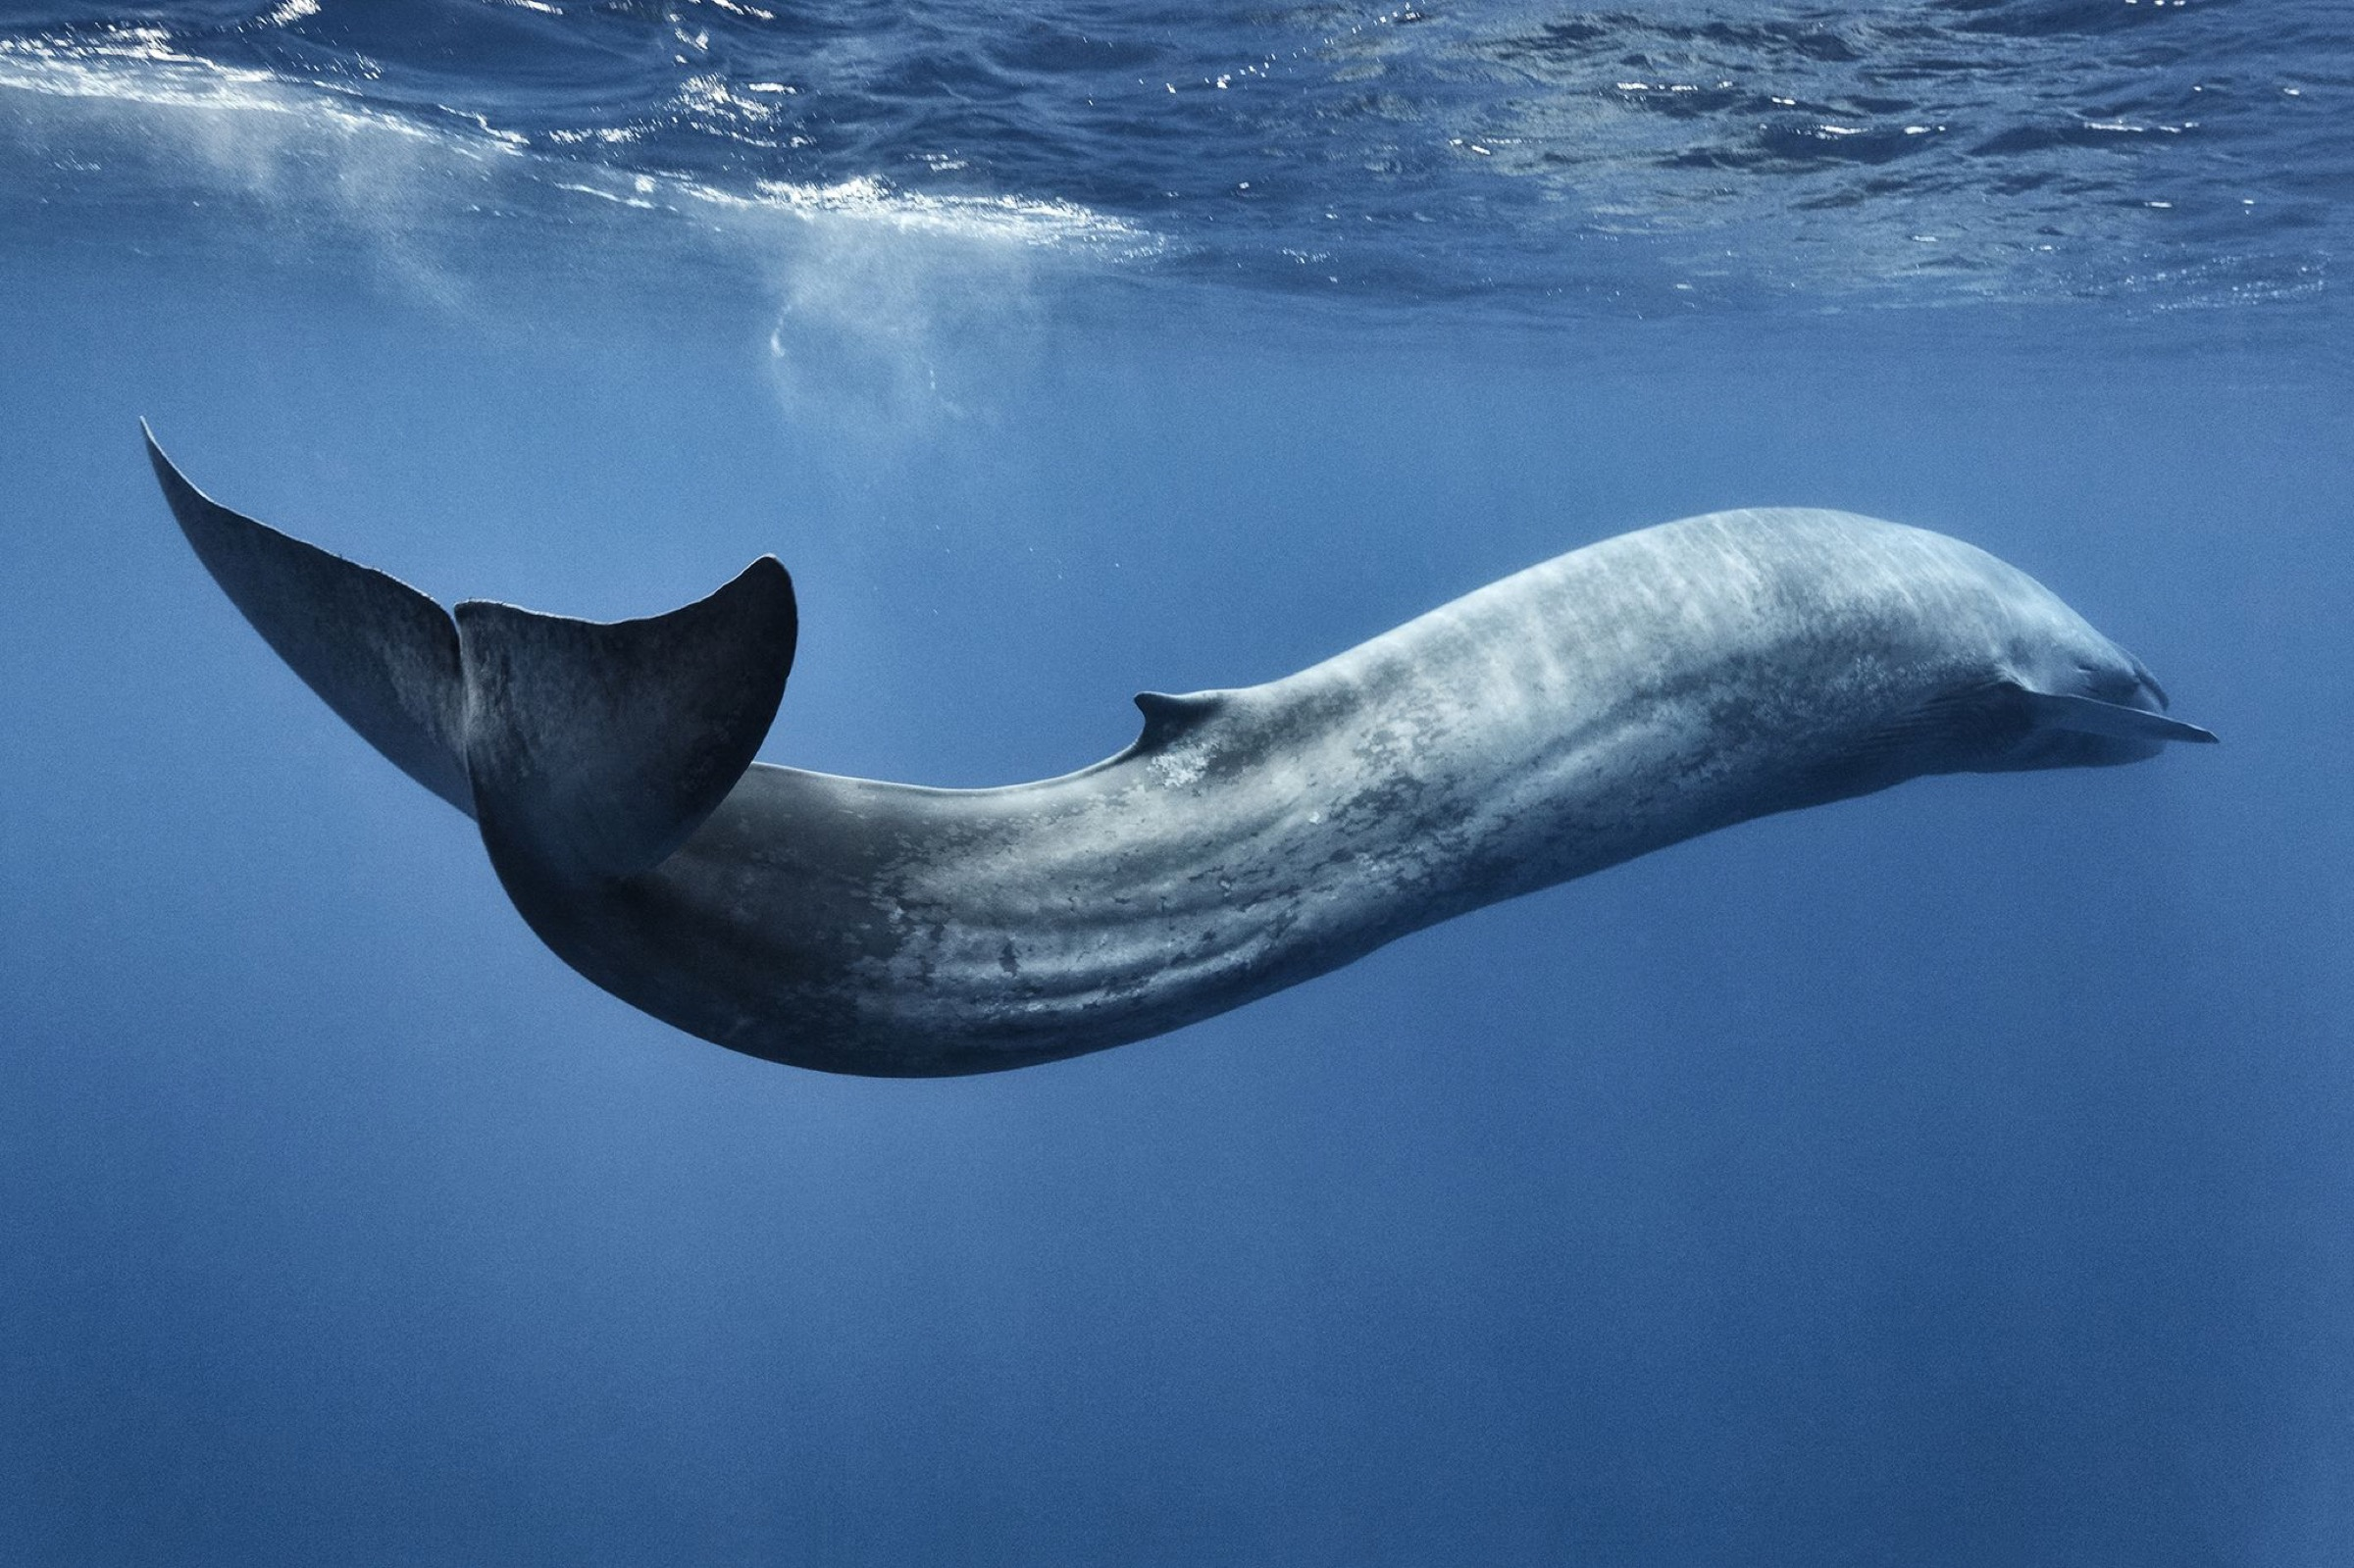 Blue whale (Balaenoptera musculus) swimming in s motion, Sri Lanka, Indian Ocean.